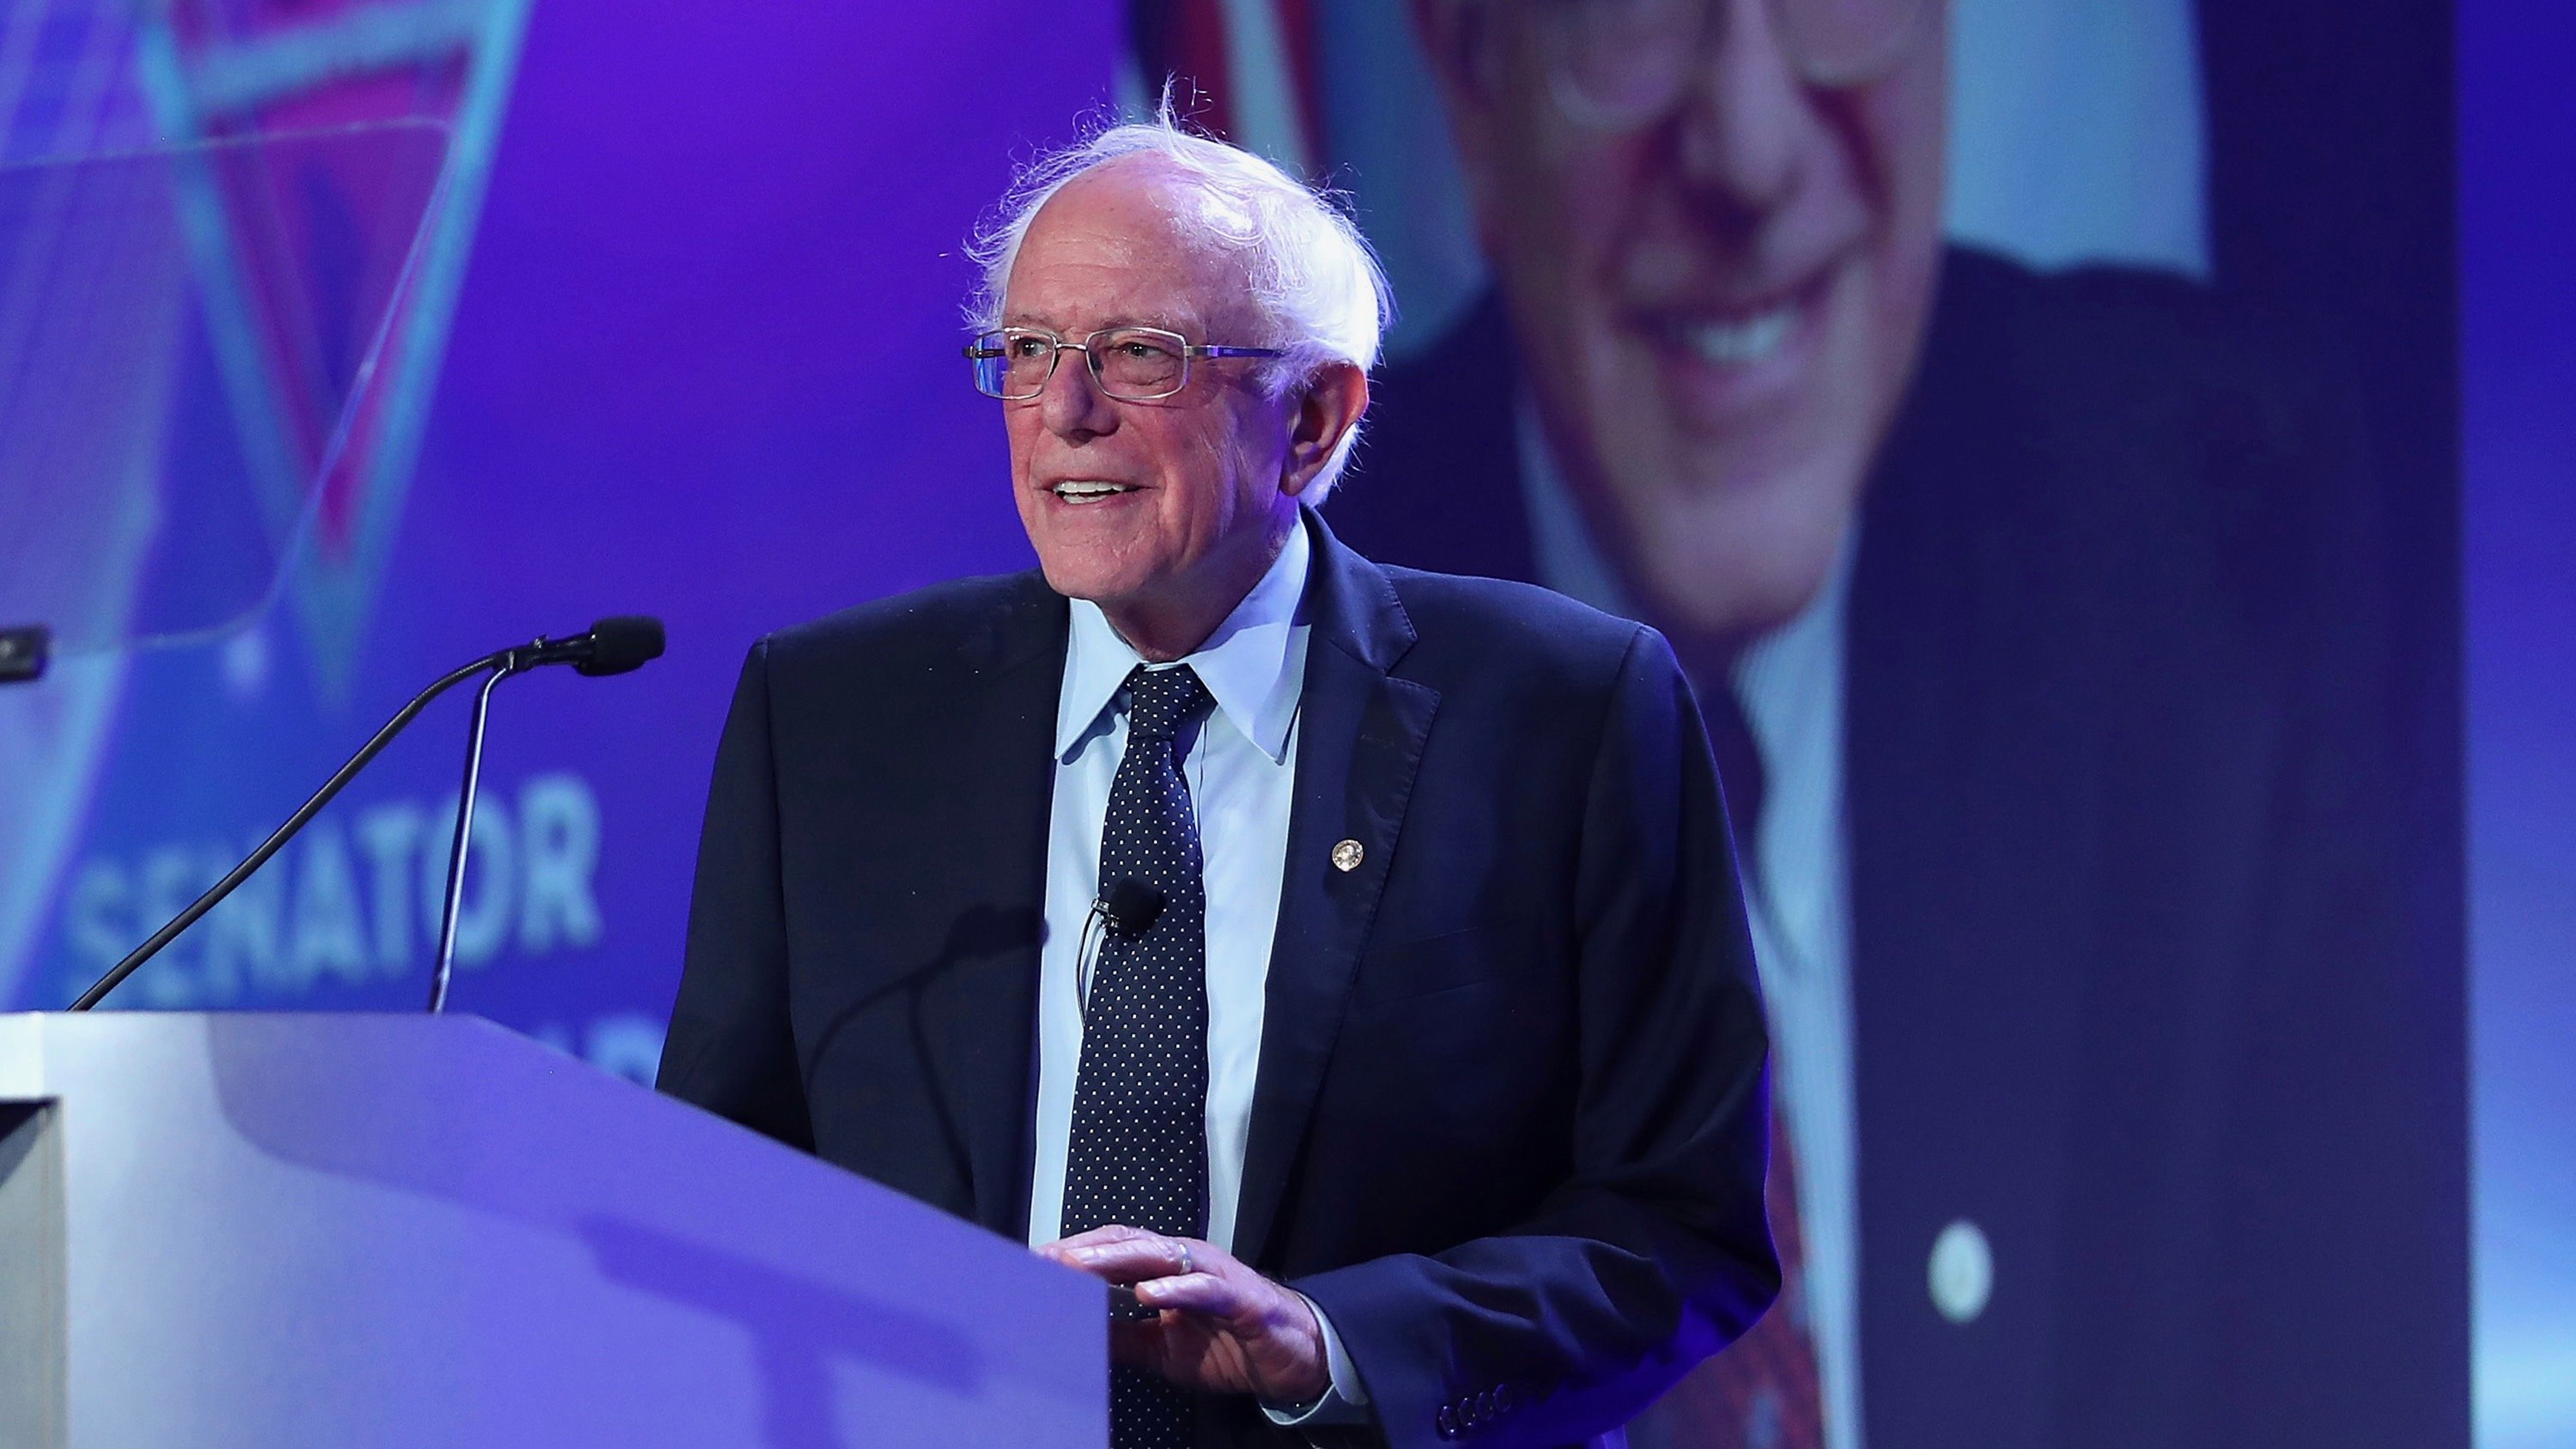 Sanders Unveils Green New Deal Plan to Avoid Climate Catastrophe Create 20